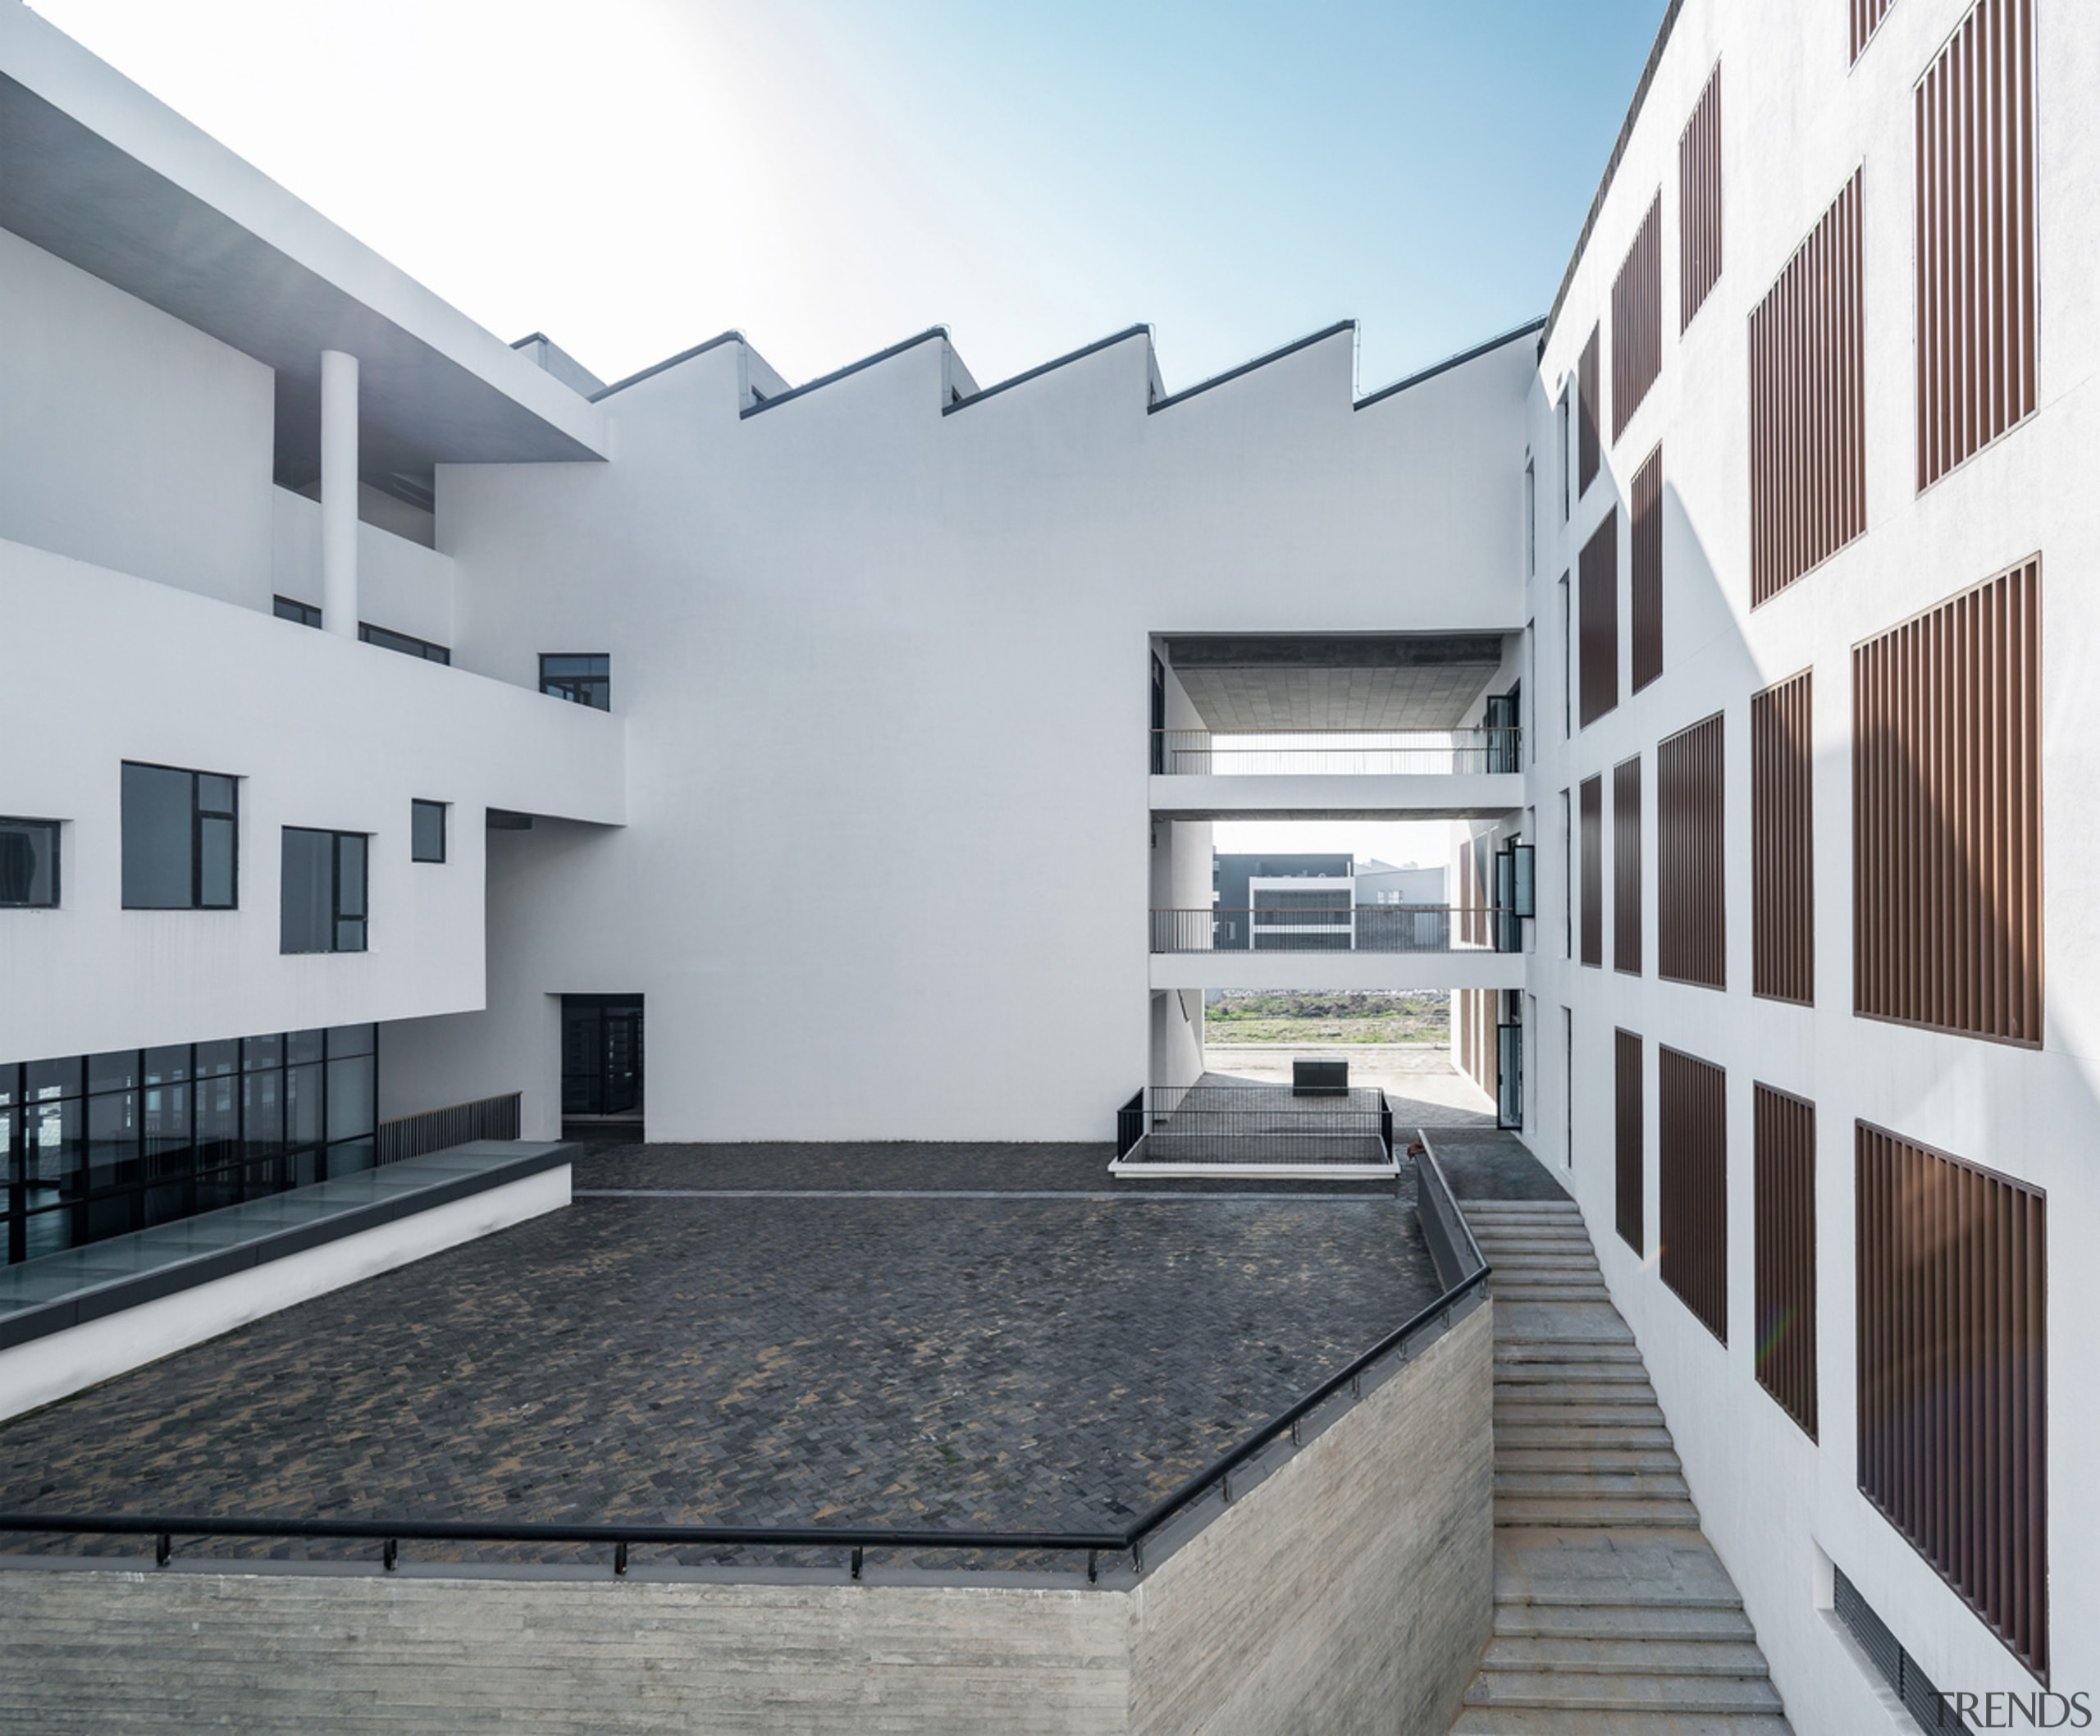 Gallery 9 - apartment | architecture | building apartment, architecture, building, condominium, daylighting, estate, facade, home, house, property, real estate, residential area, roof, window, gray, white